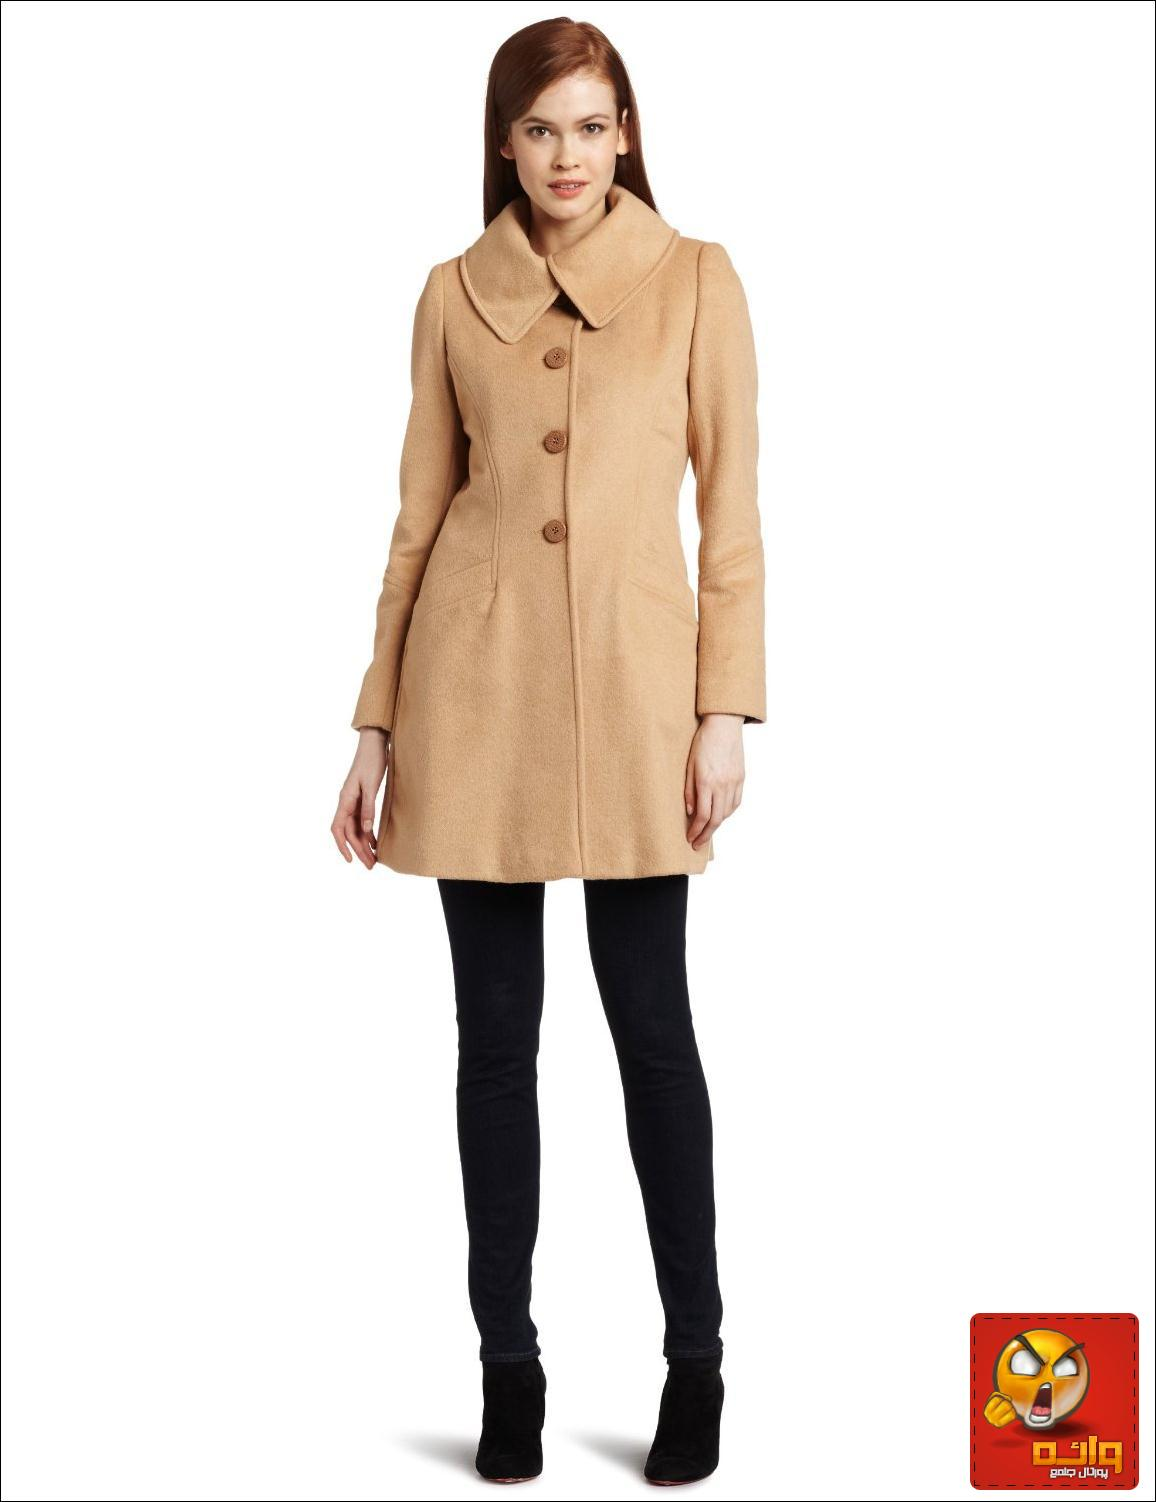 http://rozup.ir/up/wae/Pictures/Coat/WinterCoat1/Winter-Coats-For-Women-Fashion.jpg